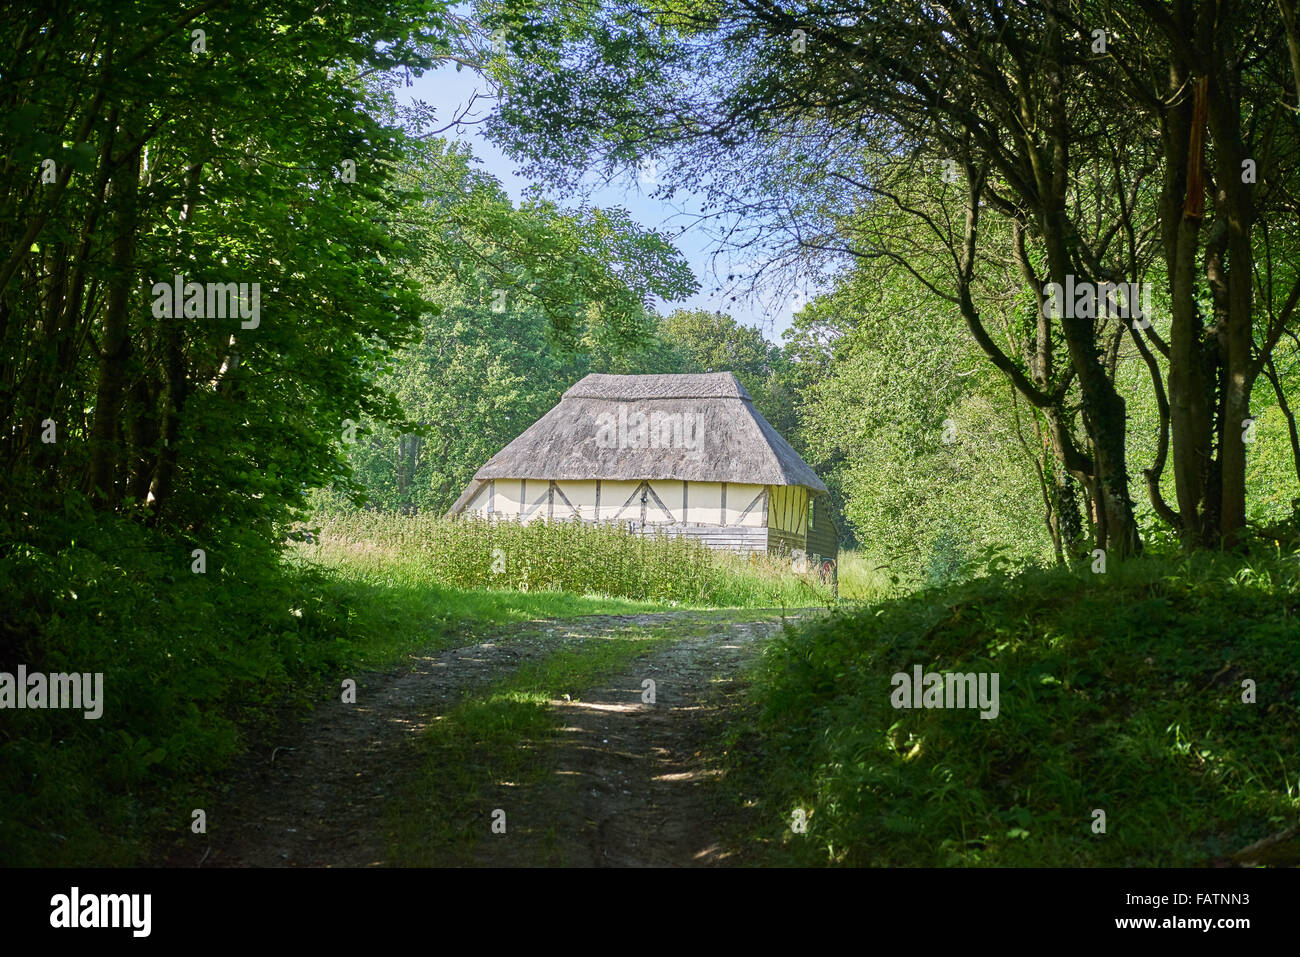 Traditional, historical farm or farmstead building of the High Weald AONB - Stock Image